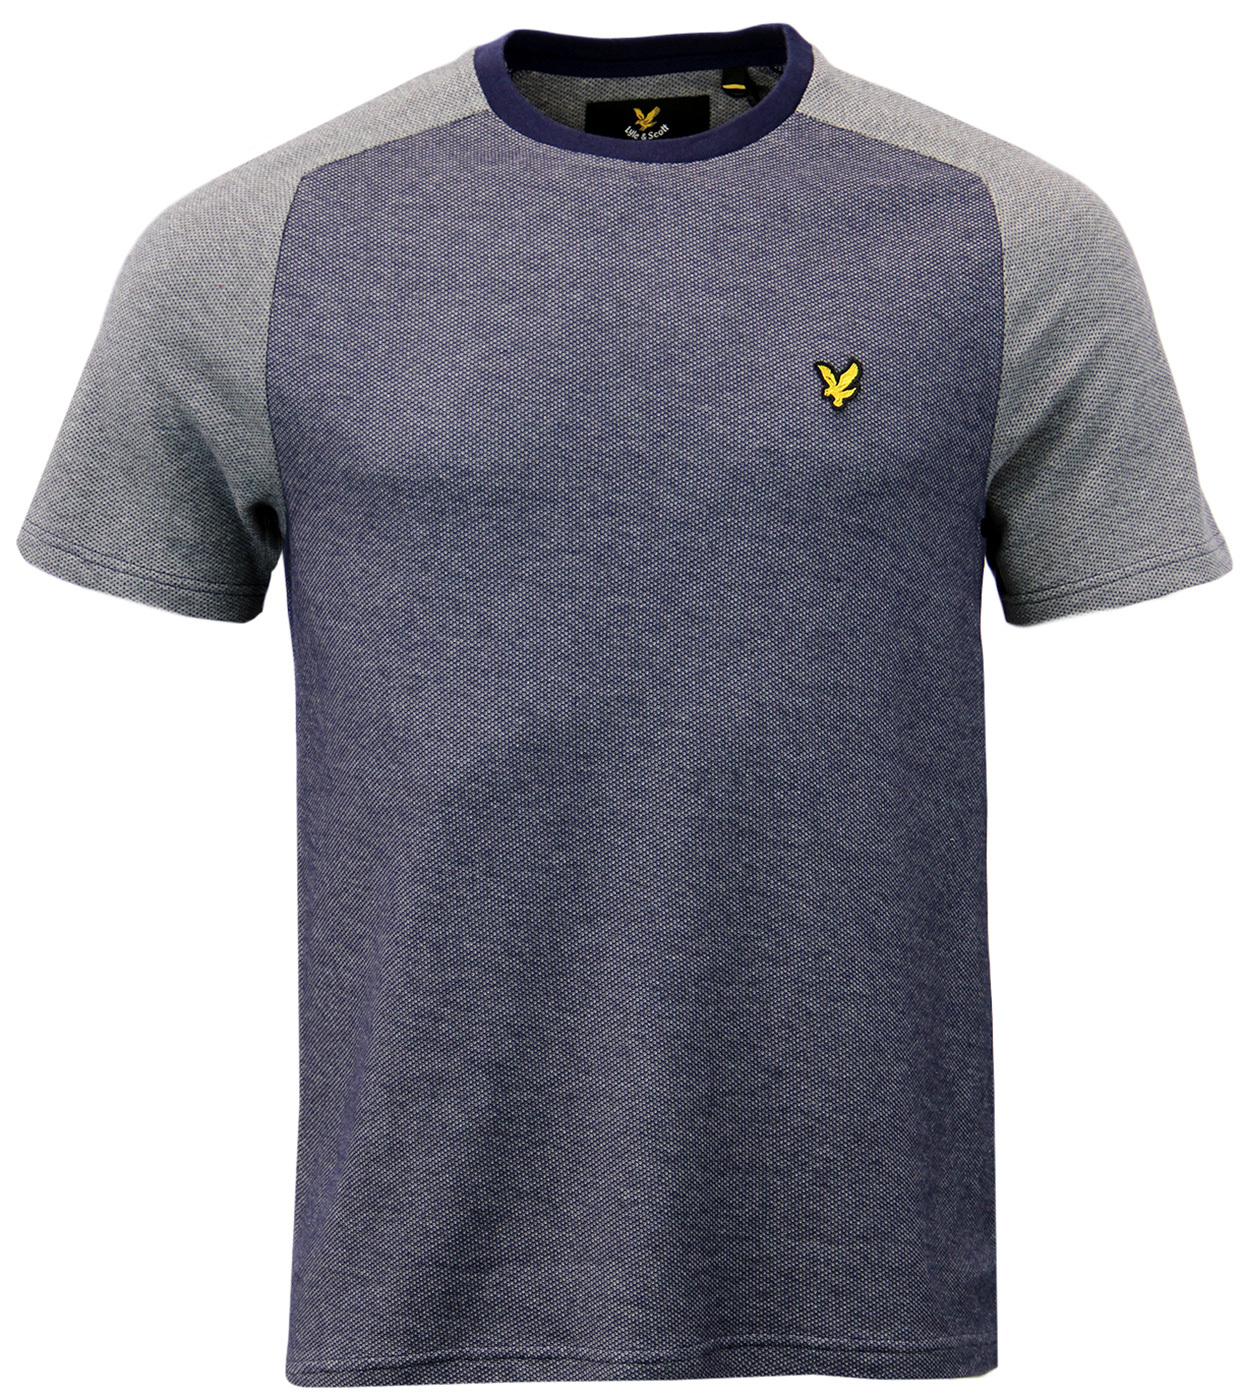 LYLE & SCOTT Retro Indie Two Tone Textured T-Shirt